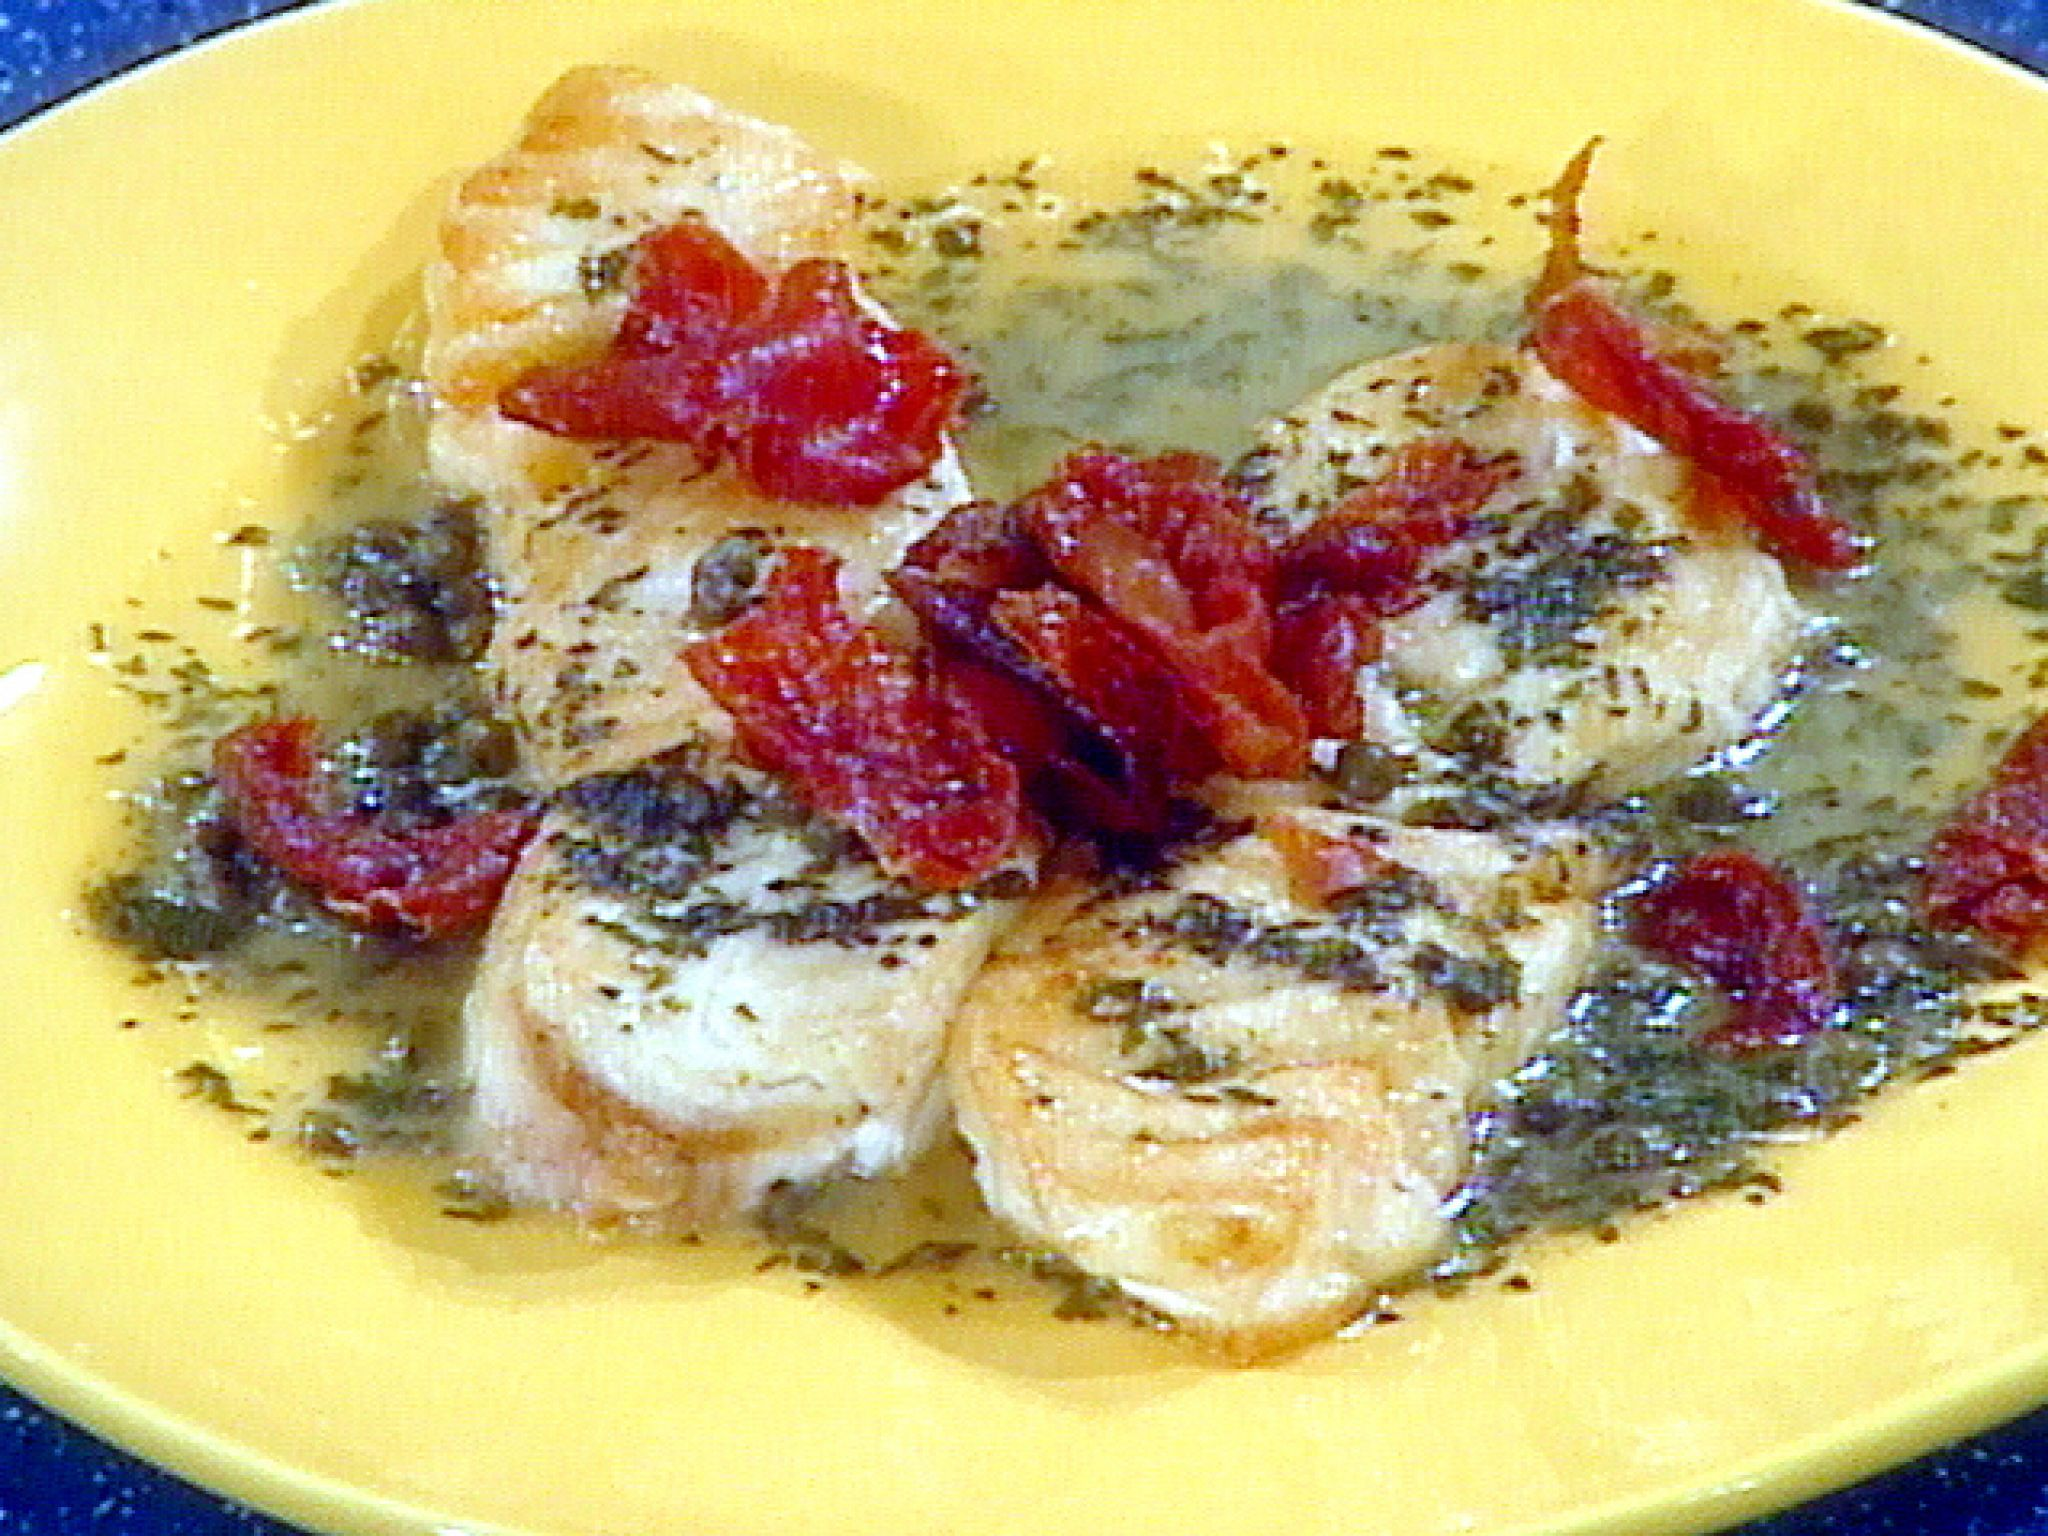 Pan Roasted Halibut With Prosciutto Lemon White Wine And Capers Recipe Roasted Halibut Halibut Recipes Food Network Recipes